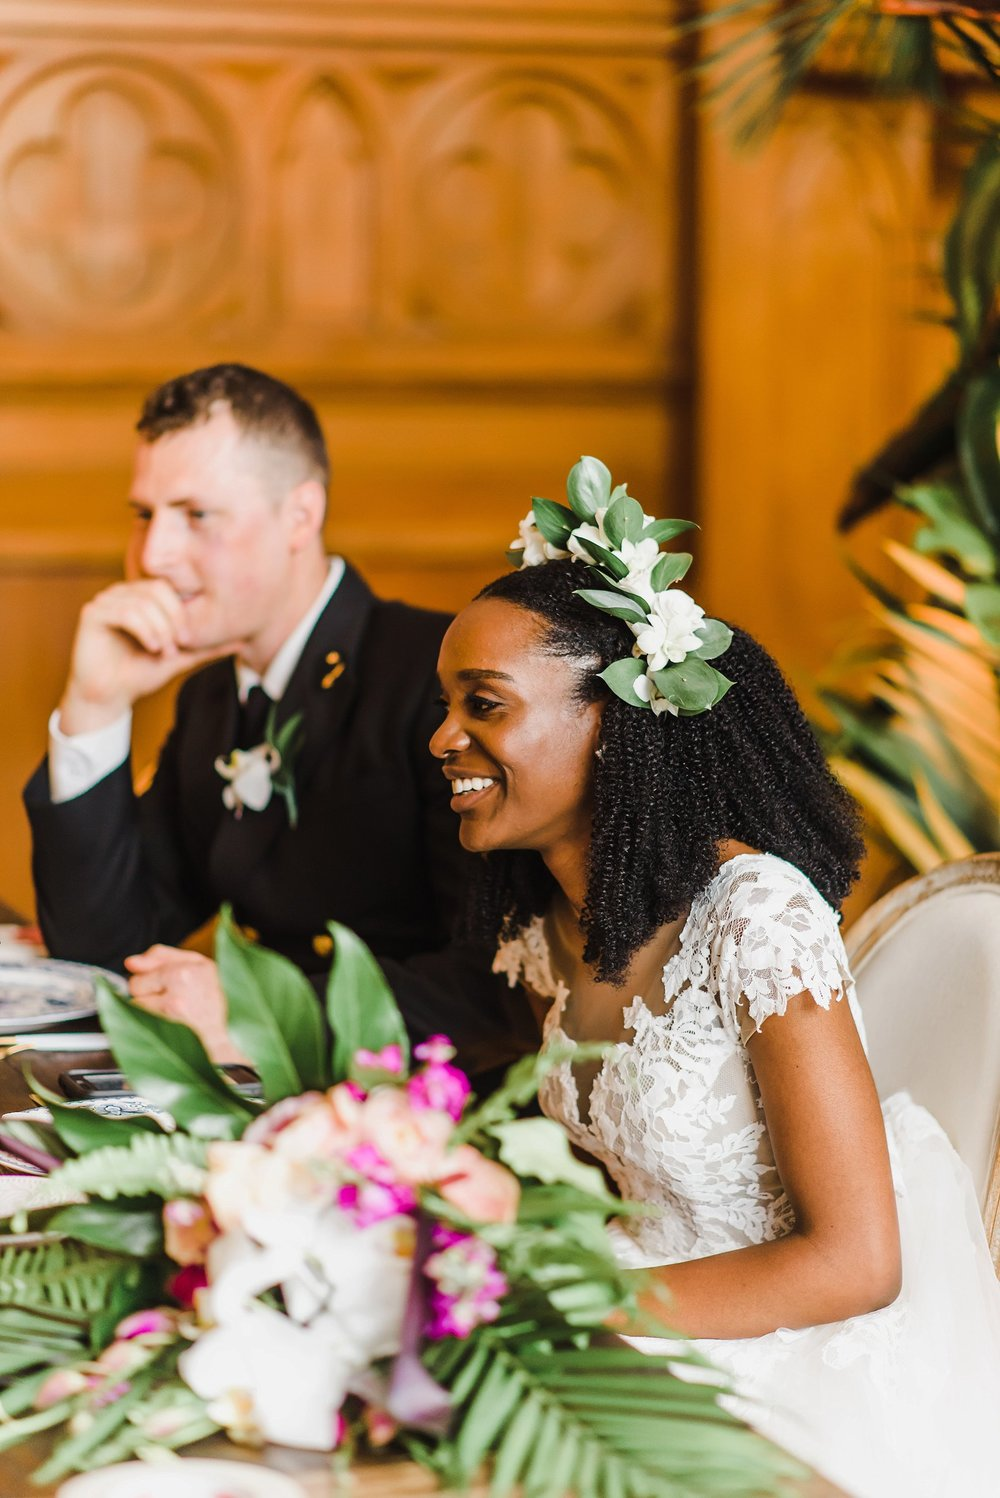 light airy indie fine art ottawa wedding photographer | Ali and Batoul Photography_1041.jpg